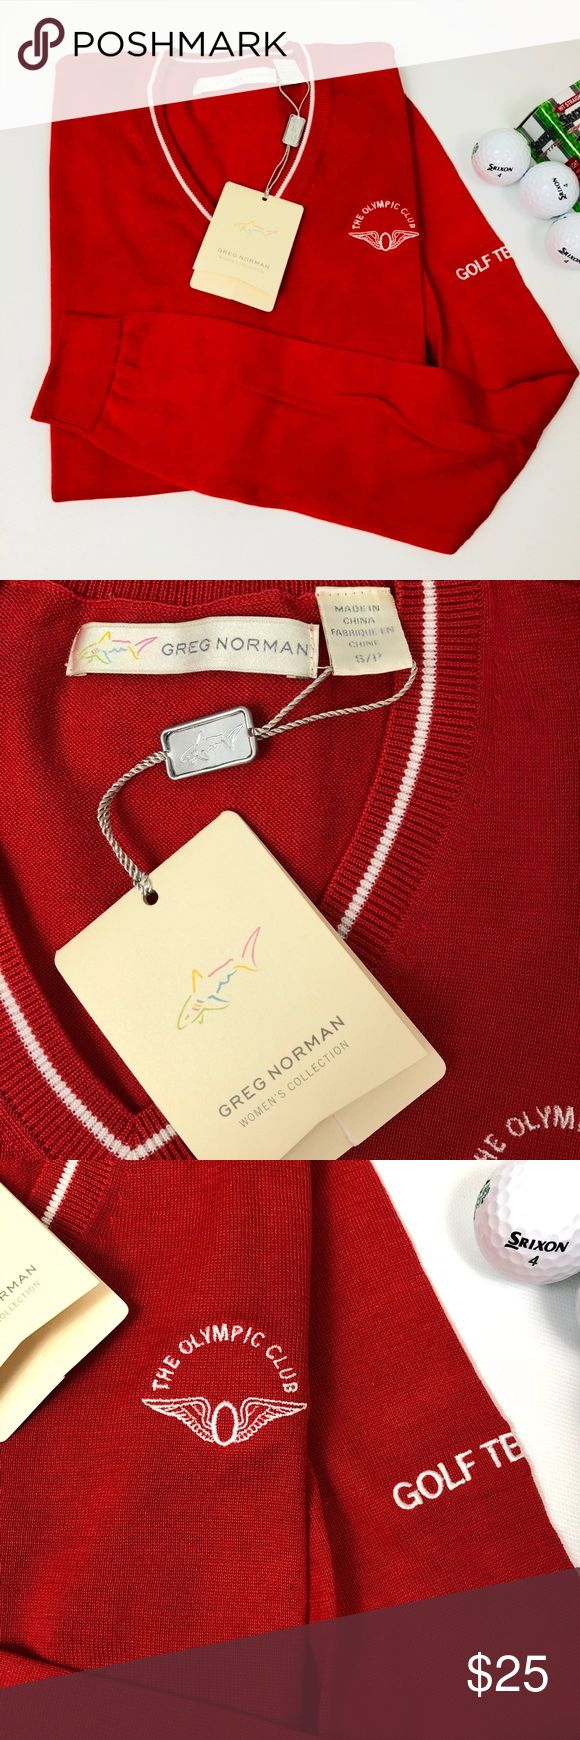 """GREG NORMAN RED SWEATER THE OLYMPIC CLUB GOLF TEAM NWT GREG NORMAN RED SWEATER THE OLYMPIC CLUB GOLF TEAM. Size S/P. 100% Mercerized ALL MEASUREMENTS ARE APPROXIMATELY AND LAYING FLAT: 🔸LENGTH: 23.5"""" 🔸PIT TO PIT: 17.5"""" 🔸WAISTBAND: 13.5"""" 🔸SLEEVE: 24.5"""" FEEL FREE TO ASK QUESTIONS  I DO NOT TRADE. GREG NORMAN WOMEN'S COLLECTION Sweaters V-Necks"""